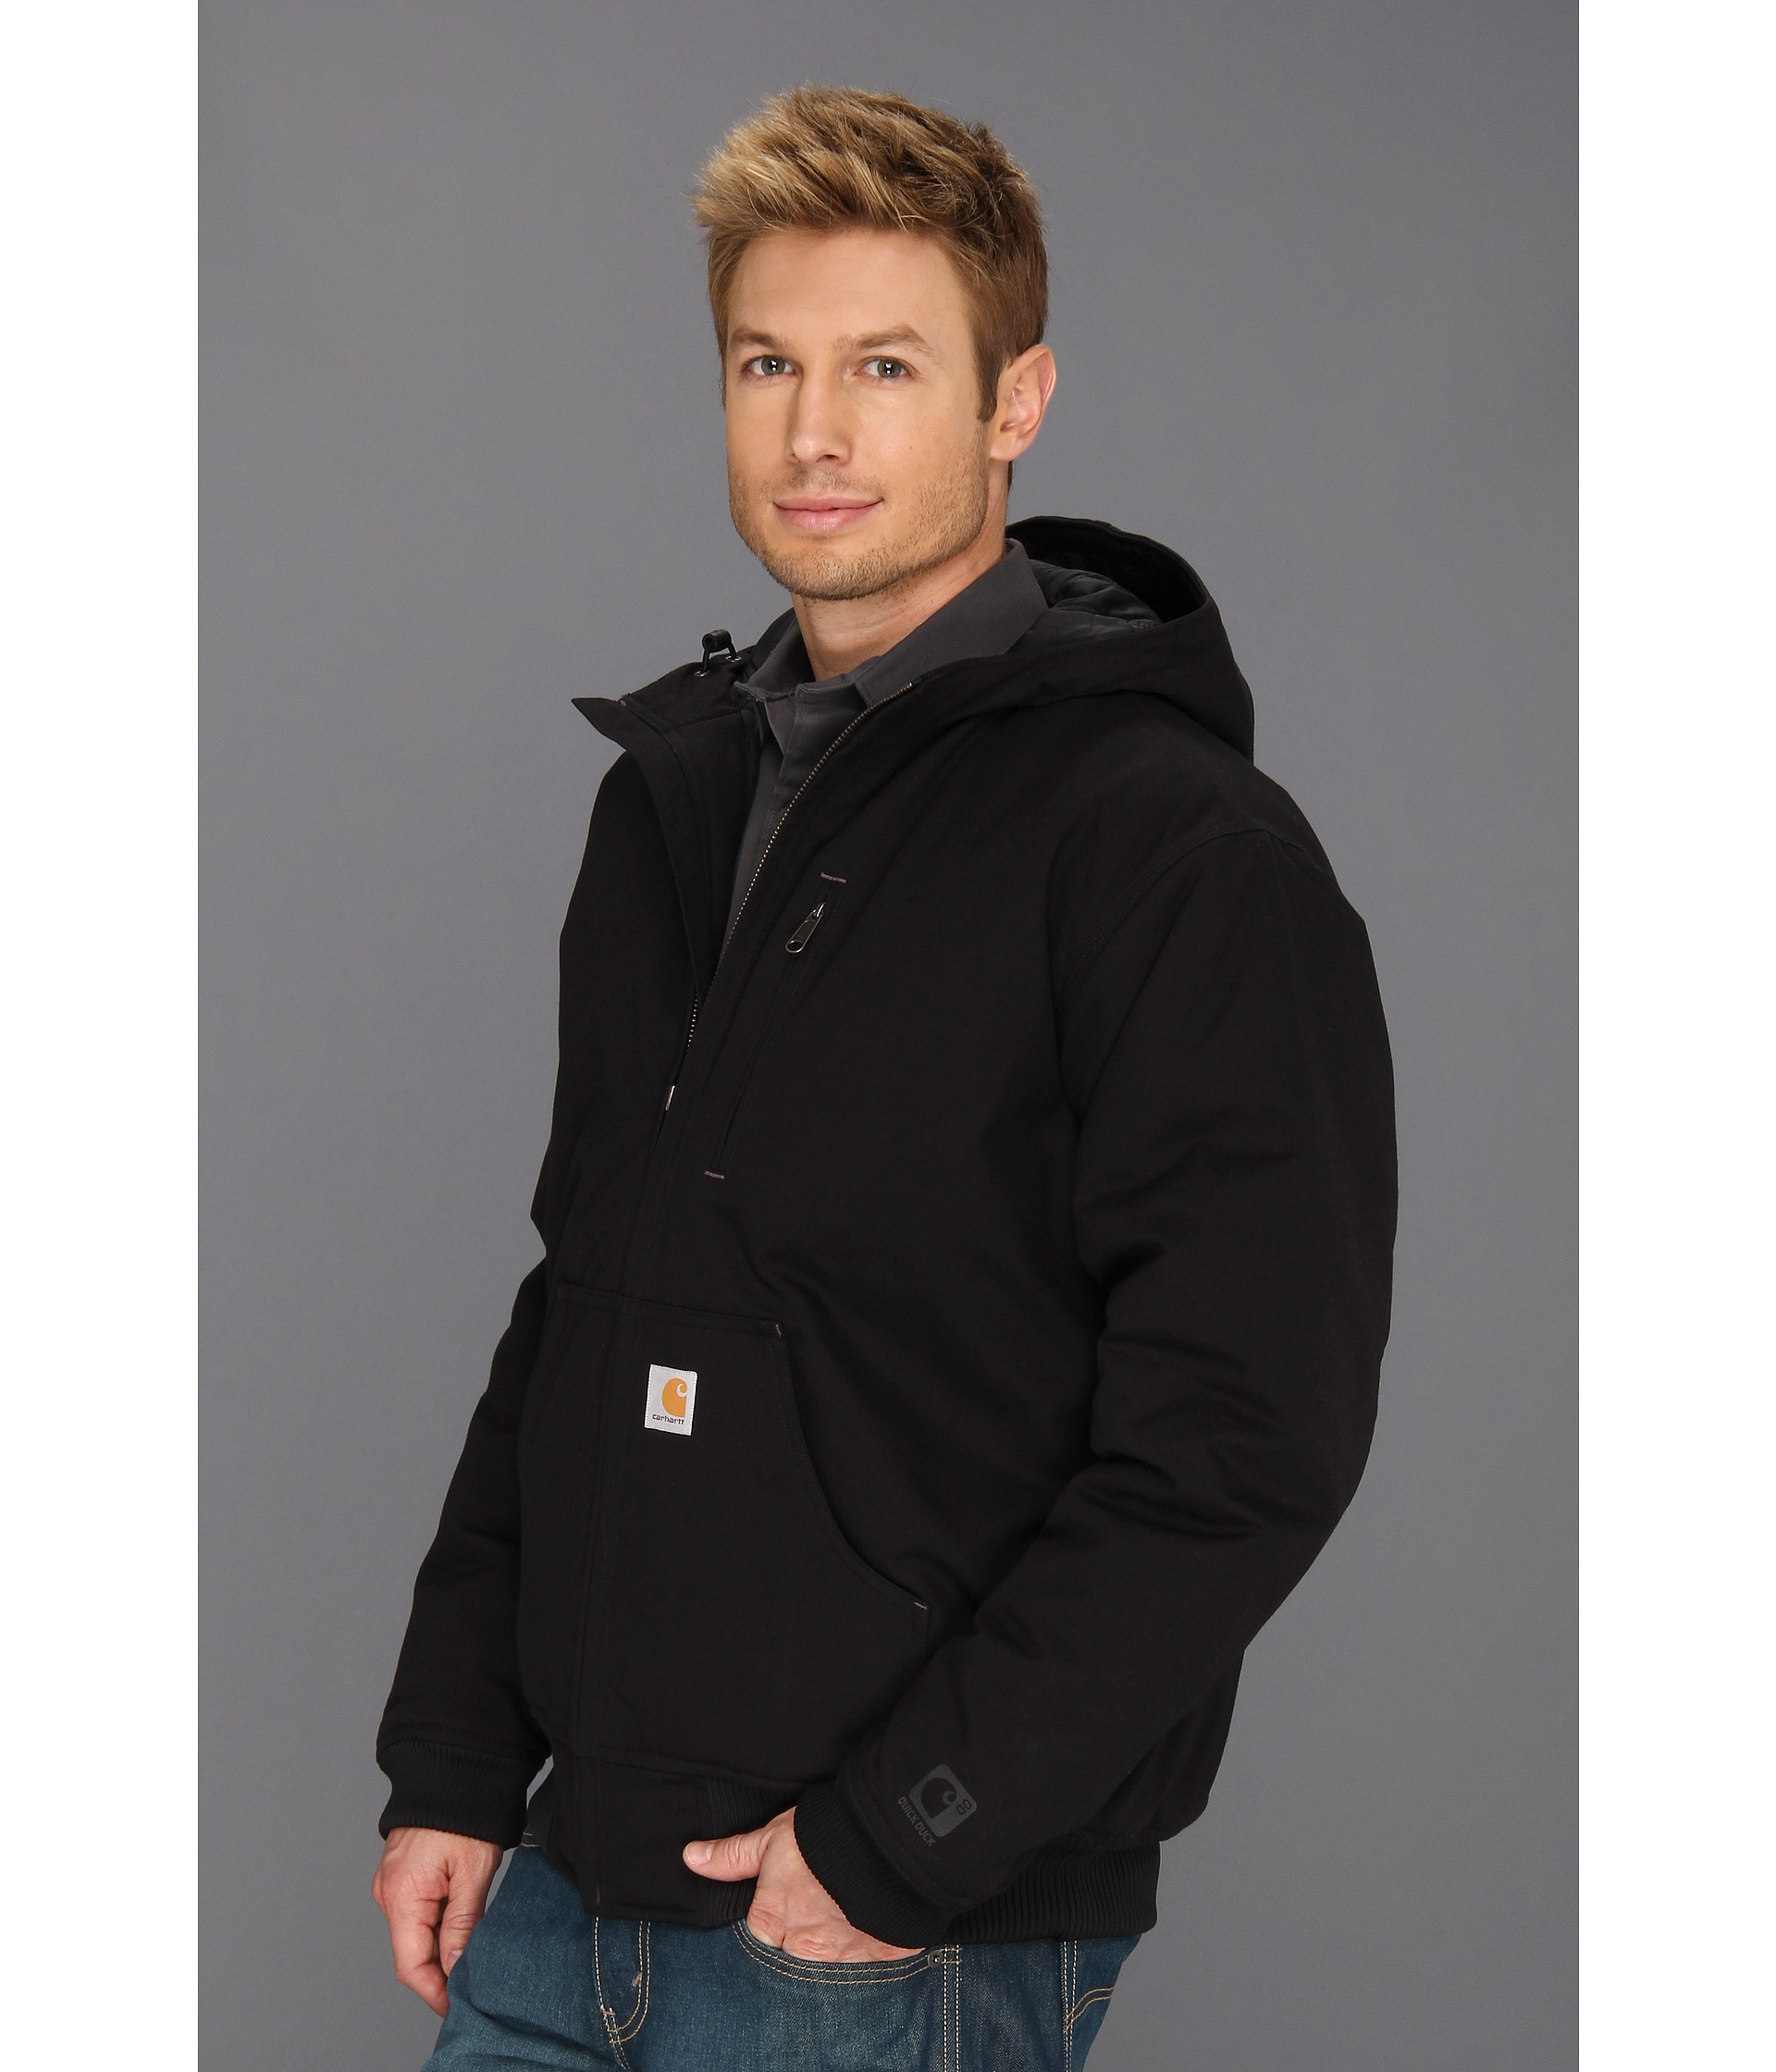 Carhartt Quick Duck Woodward Active Jacket Tall in Black ...